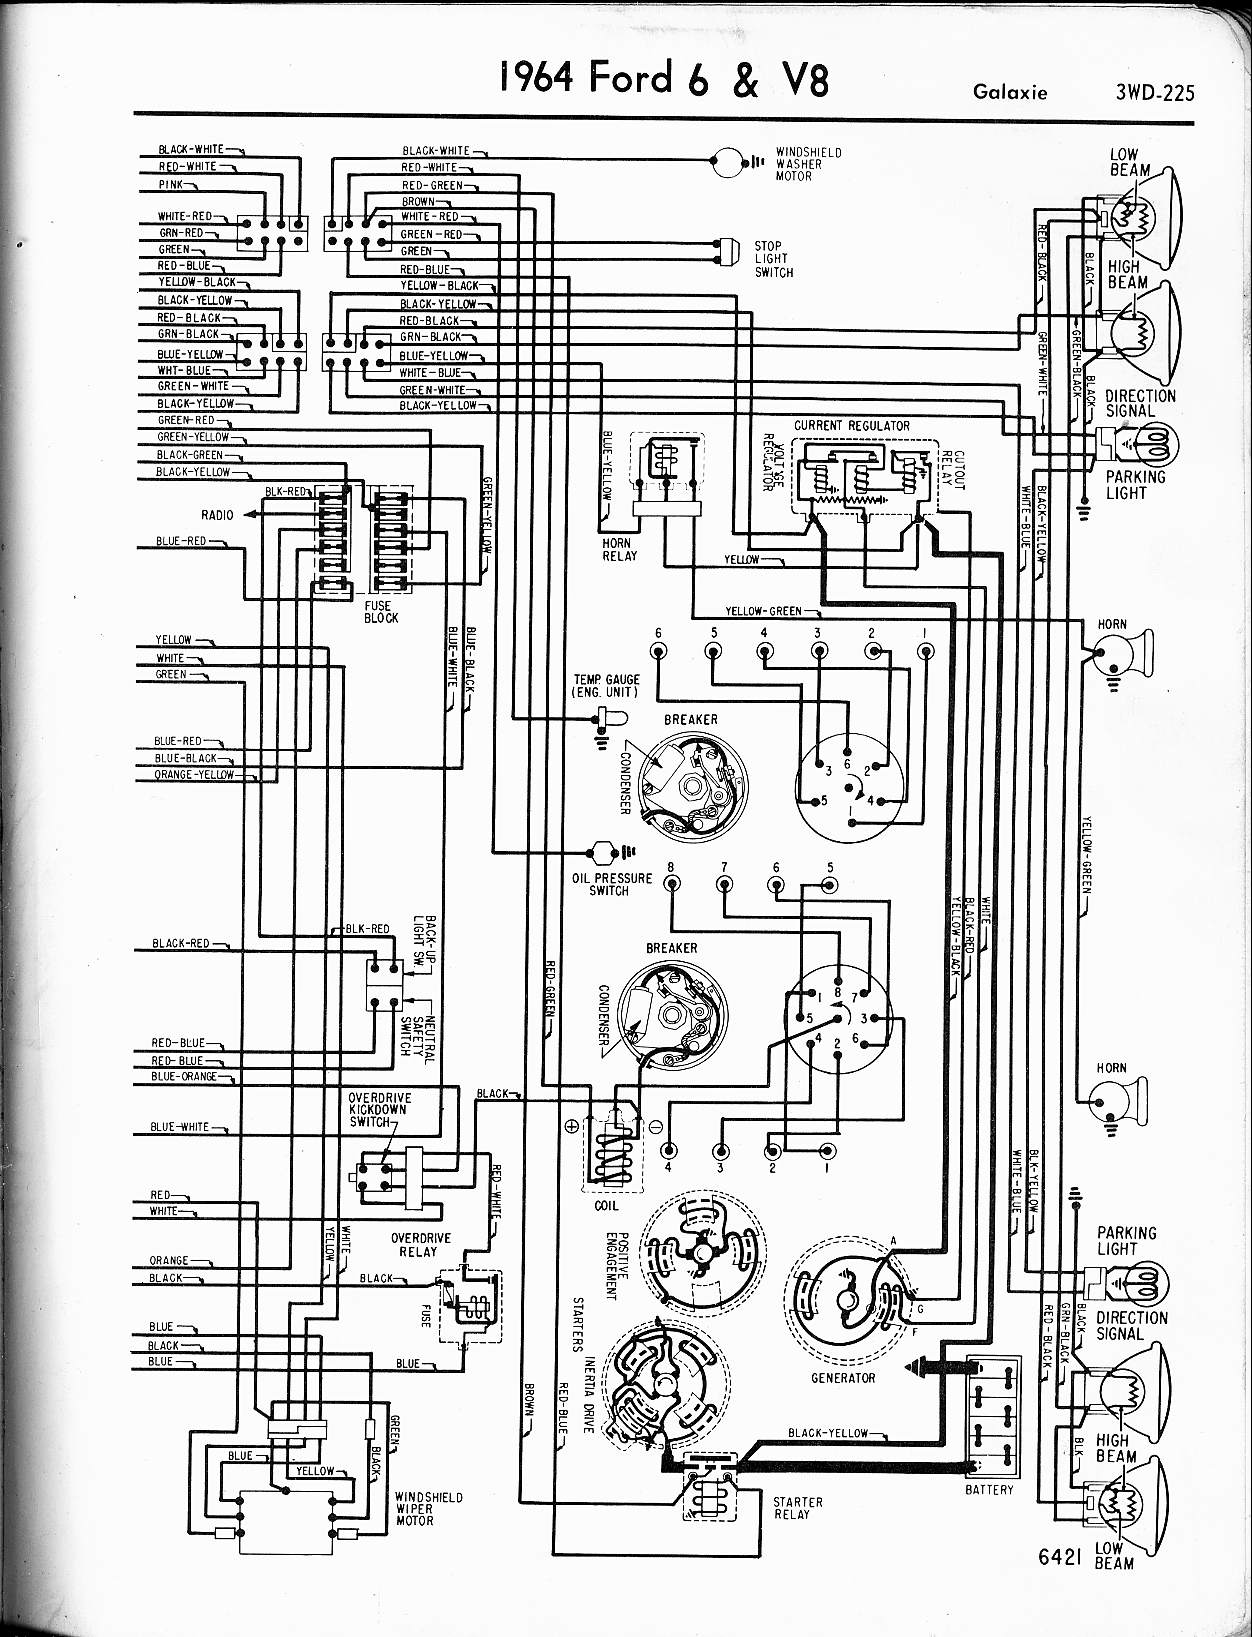 MWire5765 225 57 65 ford wiring diagrams 1964 ford galaxie 500 wiring diagram at edmiracle.co